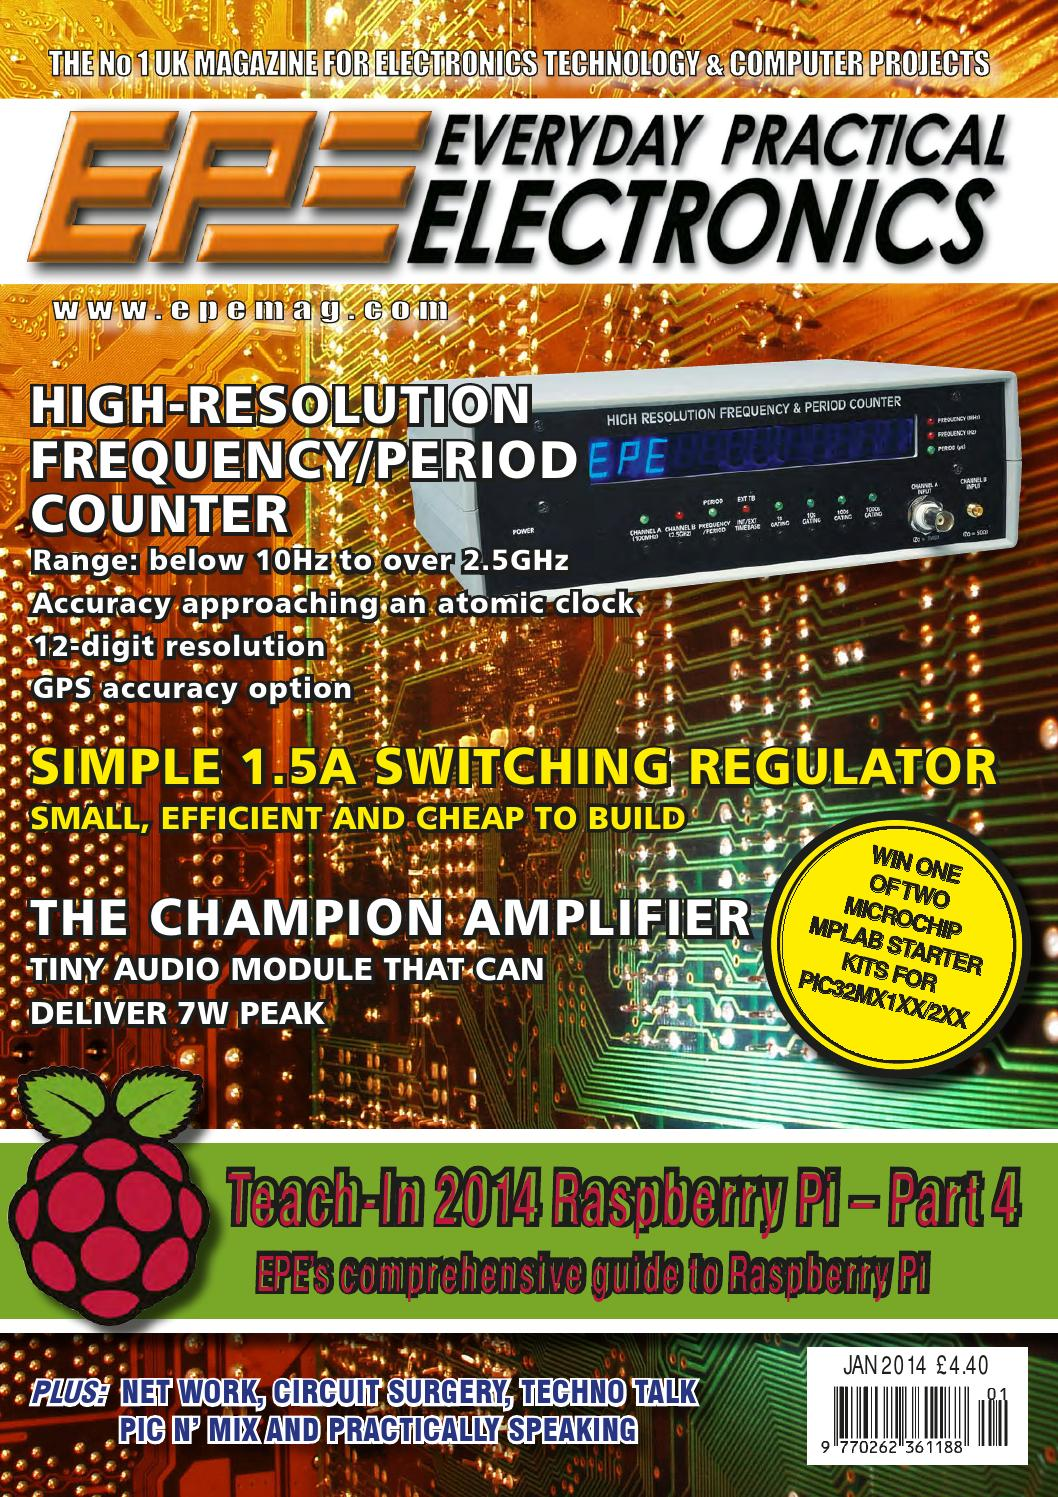 Everyday Practical Electronics 2014 06 By Yurgen Issuu Meter Dpm To Measure Ac Voltage Simply Smarter Circuitry Blog 01